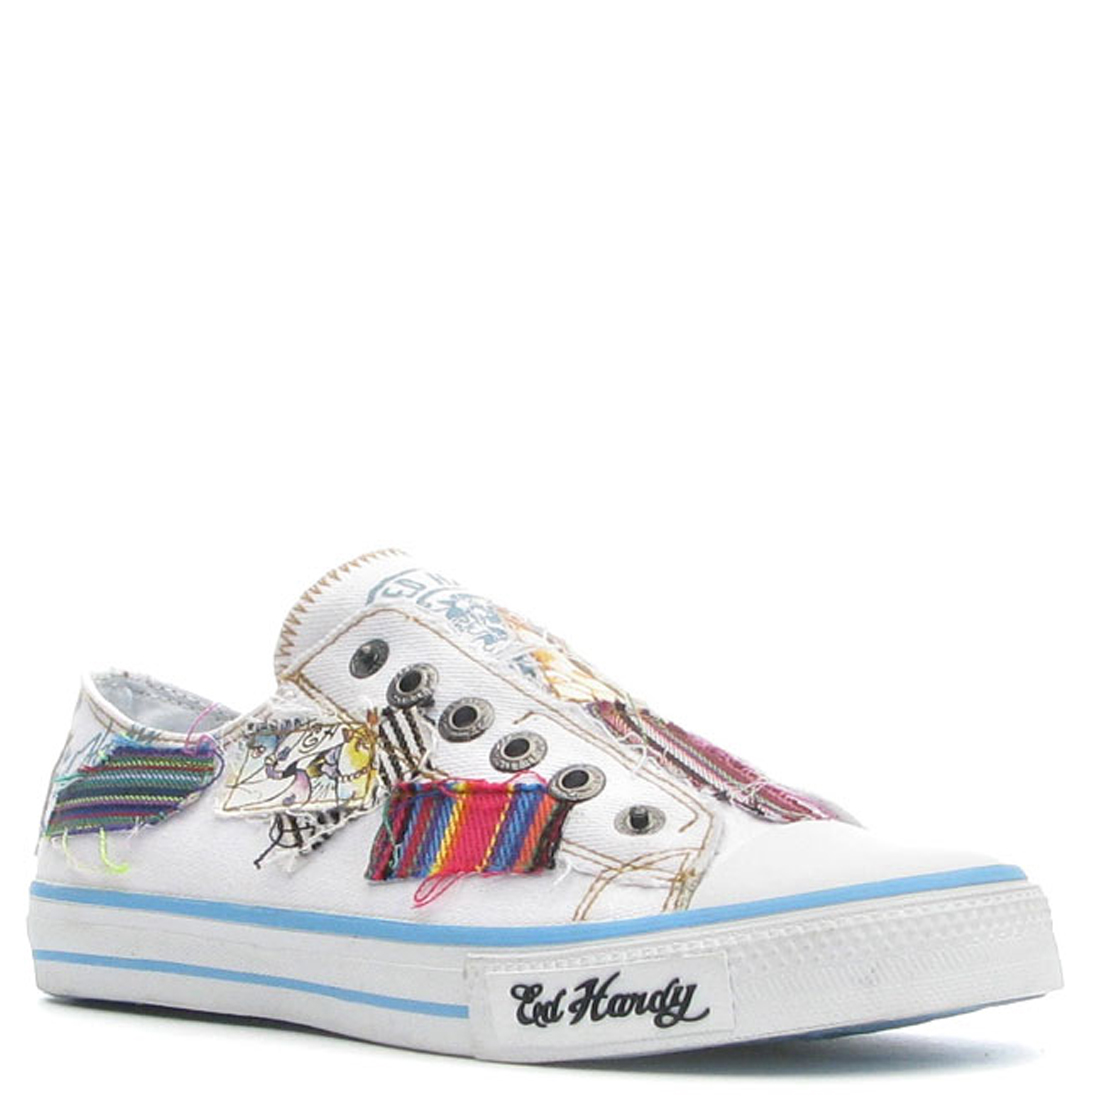 Ed Hardy Lowrise Rhyder Shoe for Men - White